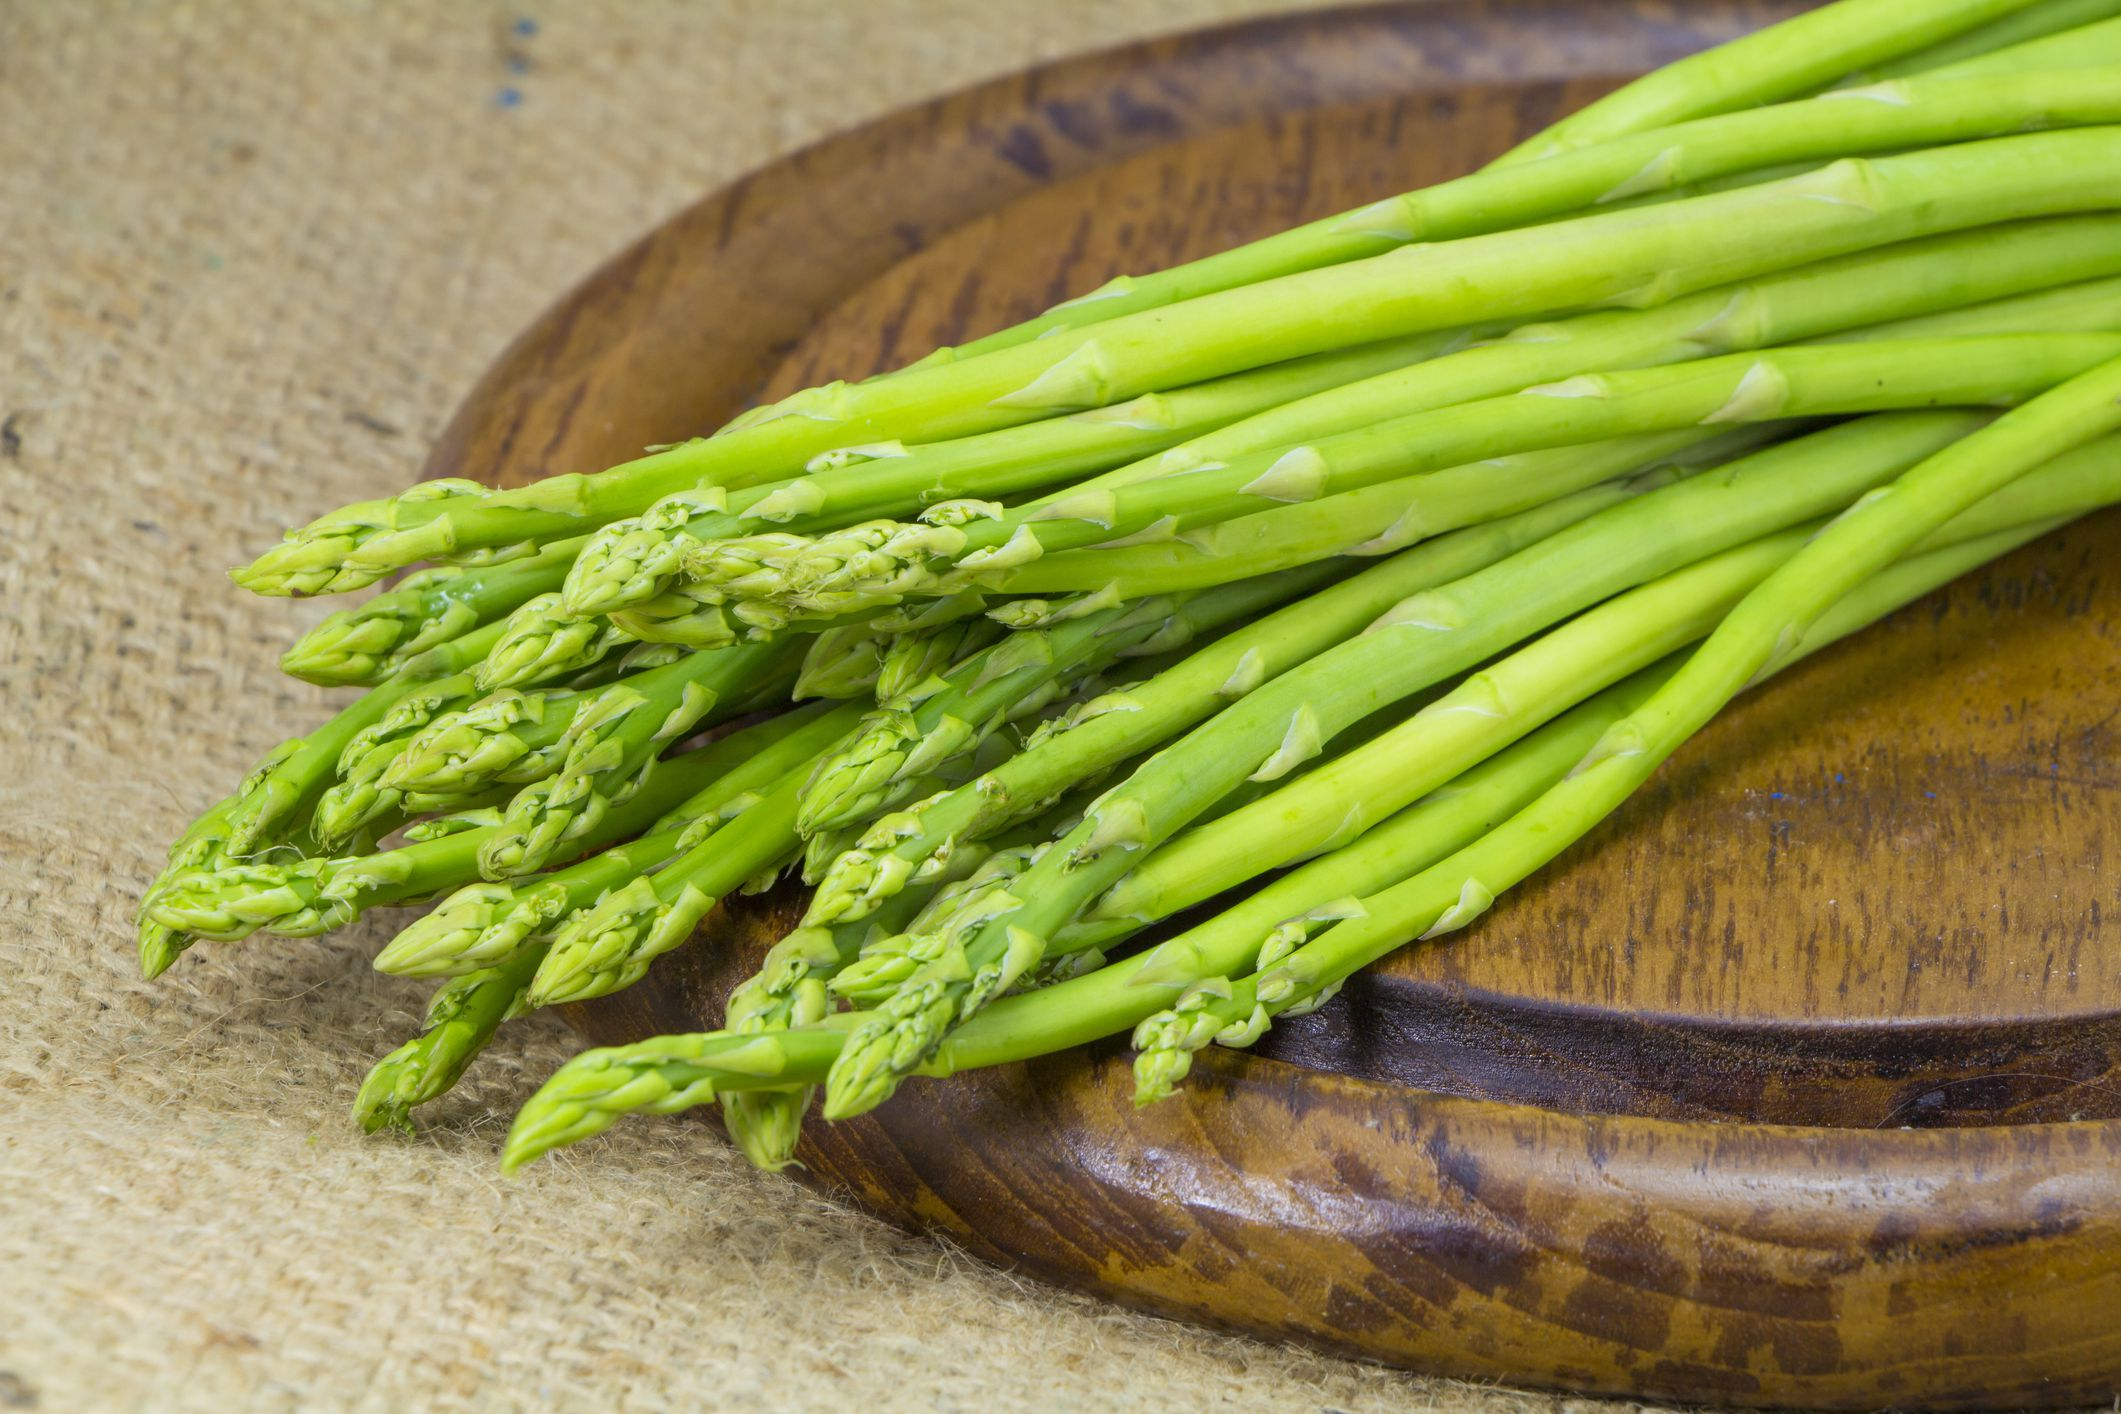 Does Asparagus Cause Cancer or Help Fight It?